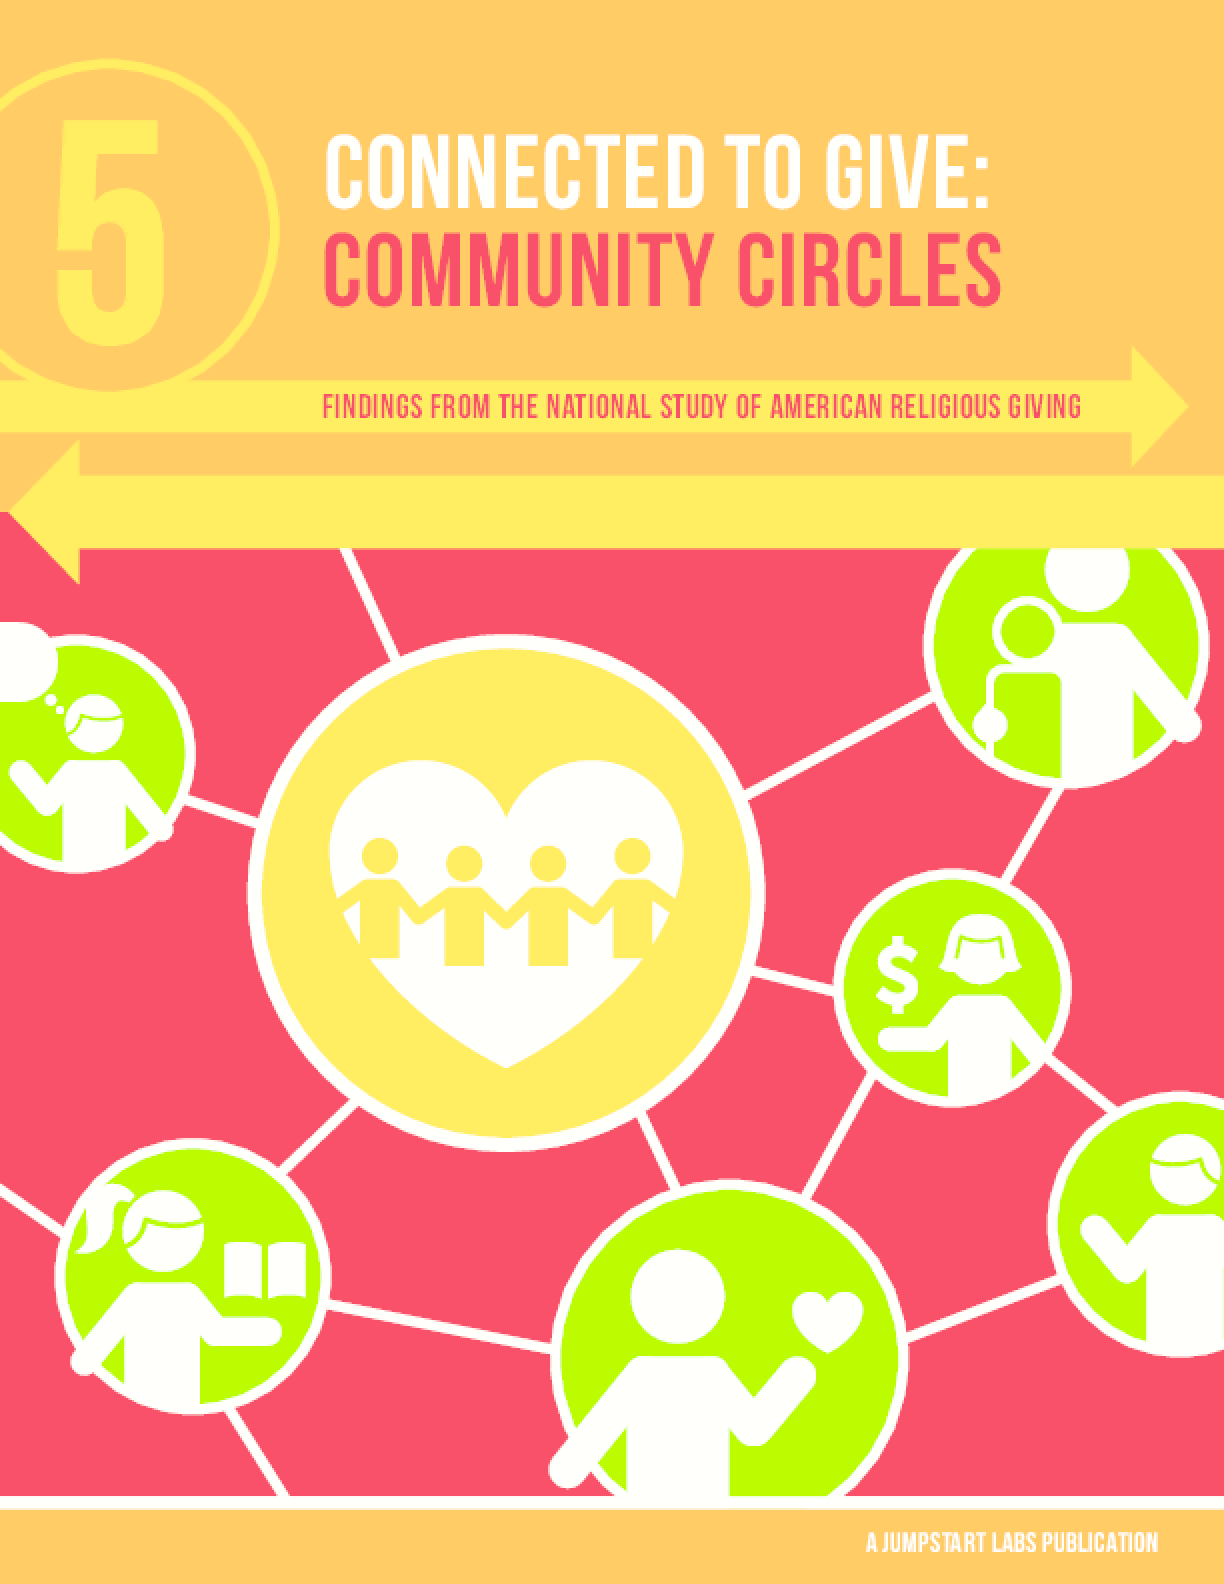 Connected to Give: Community Circles